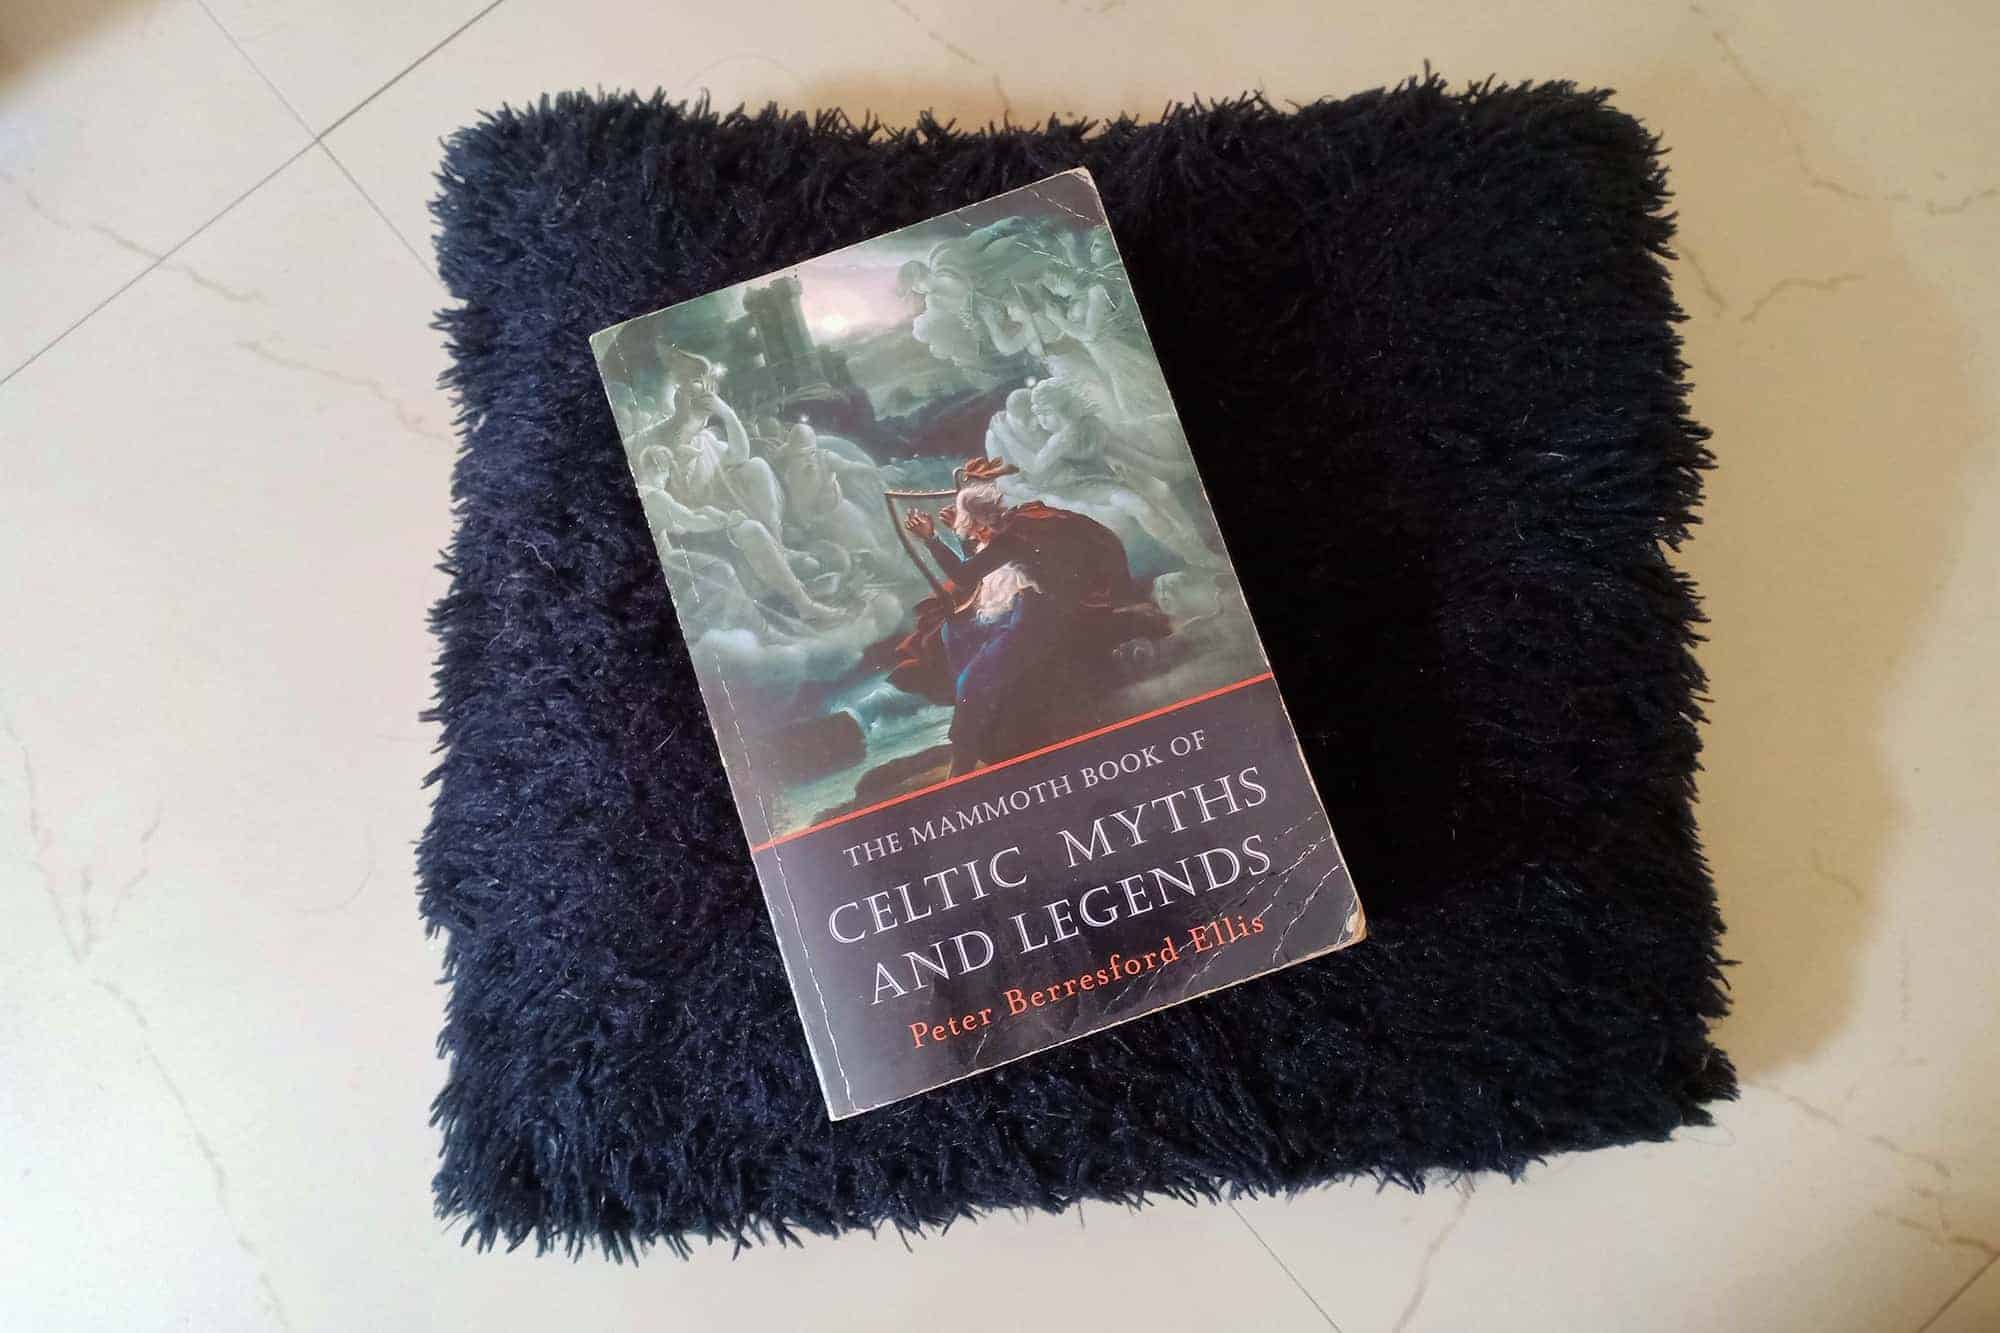 The Mammoth Book Of Celtic Myths And Legends Takes You To Magical Realms And Eras